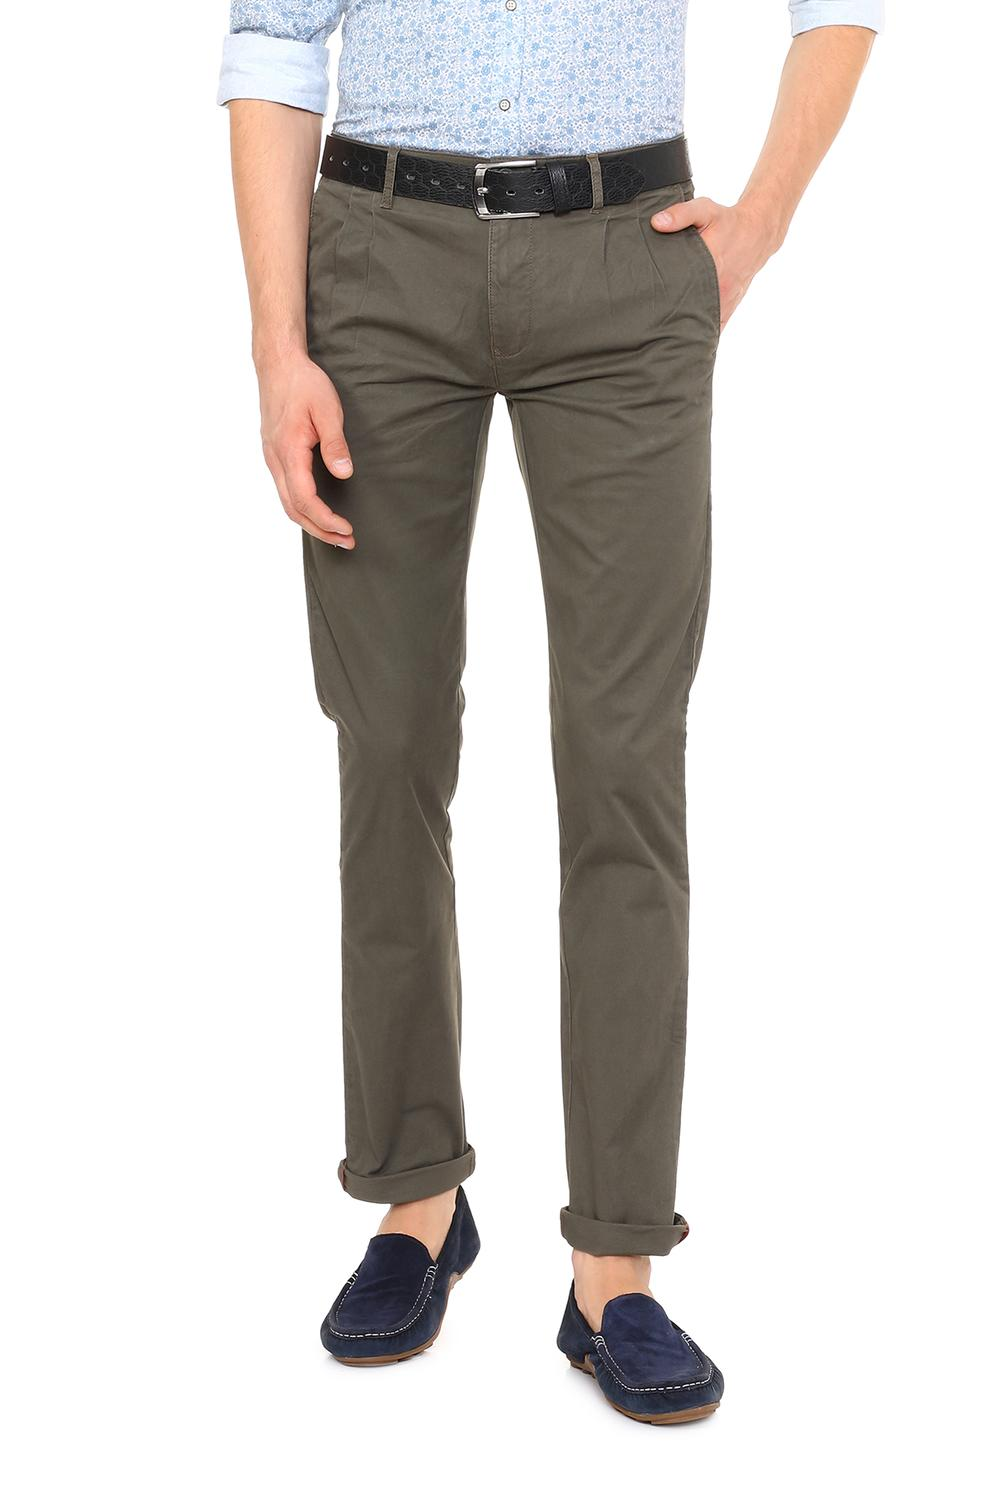 3ee433b8b Peter England Jeans Trousers   Chinos